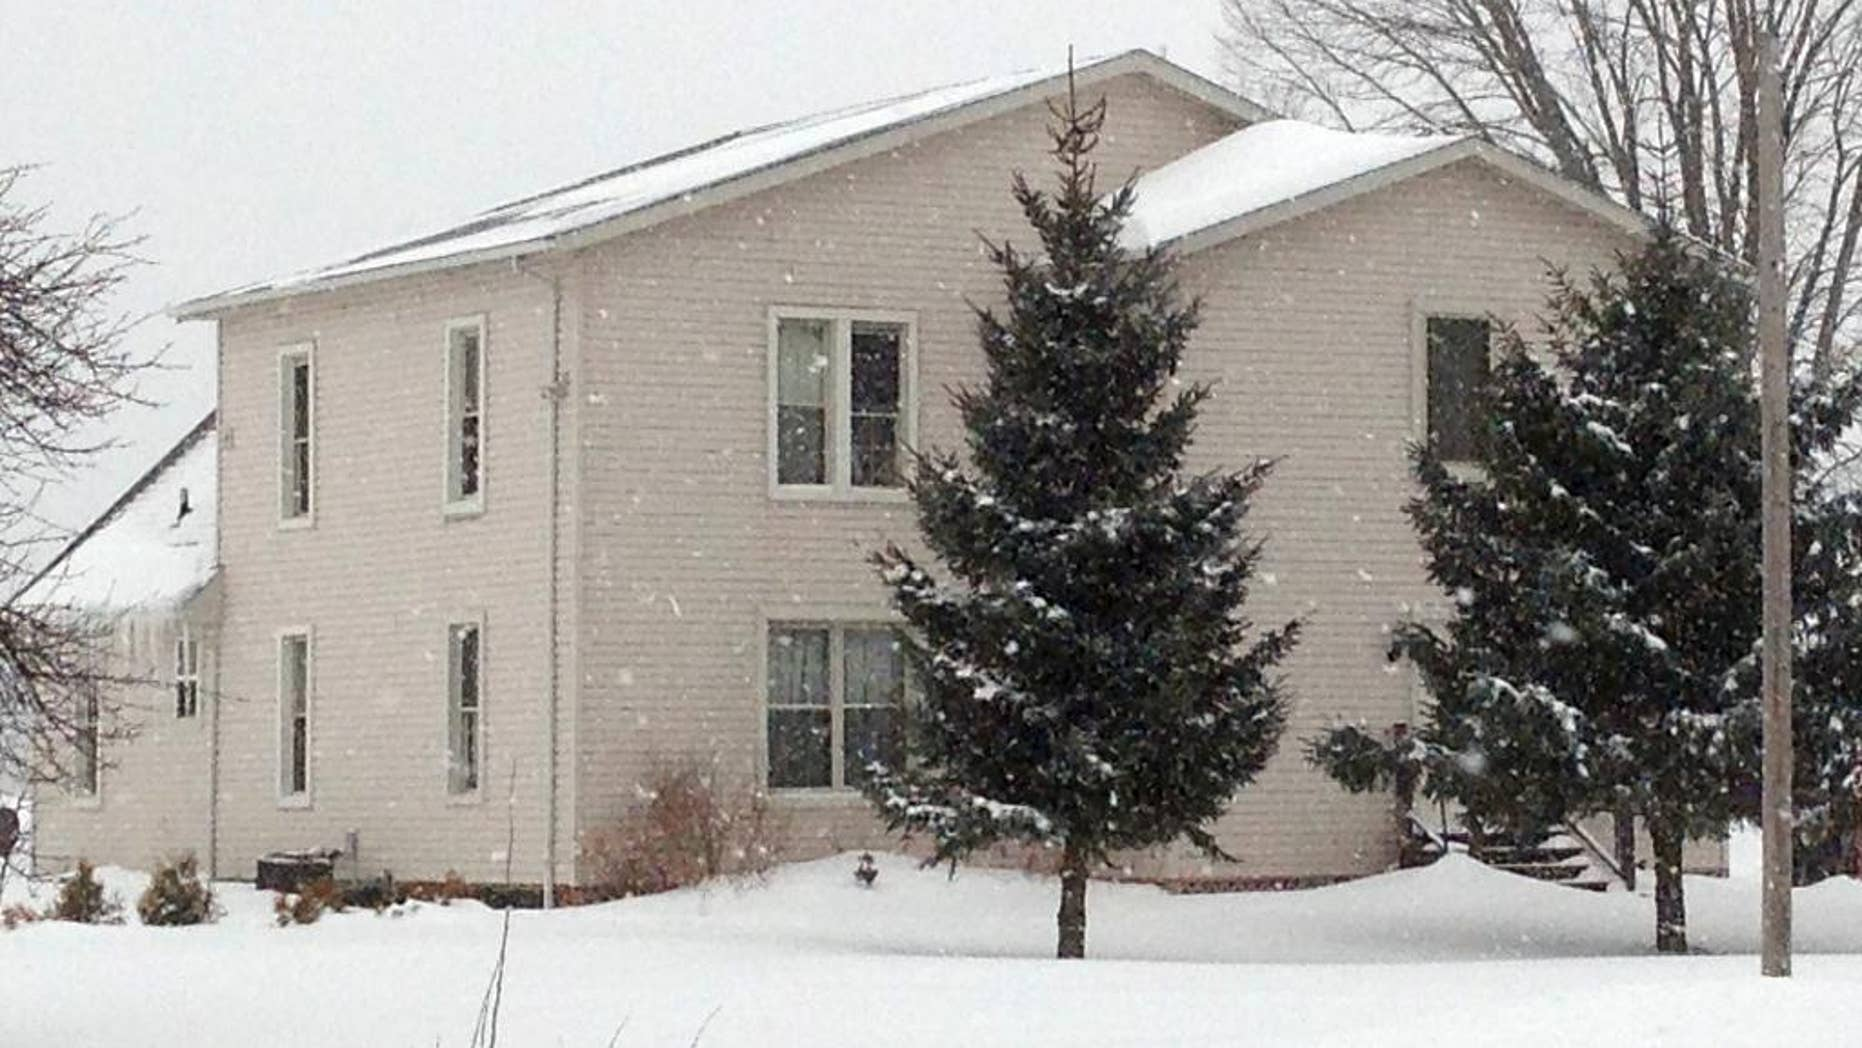 The house where a husband and wife lived with their four adopted children is shown, Wednesday, March 4, 2015, in Ashtabula, Ohio. The husband and wife pleaded not guilty to charges alleging they kept three adopted children locked in bedrooms most of the time and gave them little to eat. Prosecutors in Ashtabula County say the pair beat their two girls and their mentally challenged adult son. They were indicted last week on other charges. Prosecutors say the abuse occurred between September 2011 and September 2013. (AP Photo/Mark Gillispie)